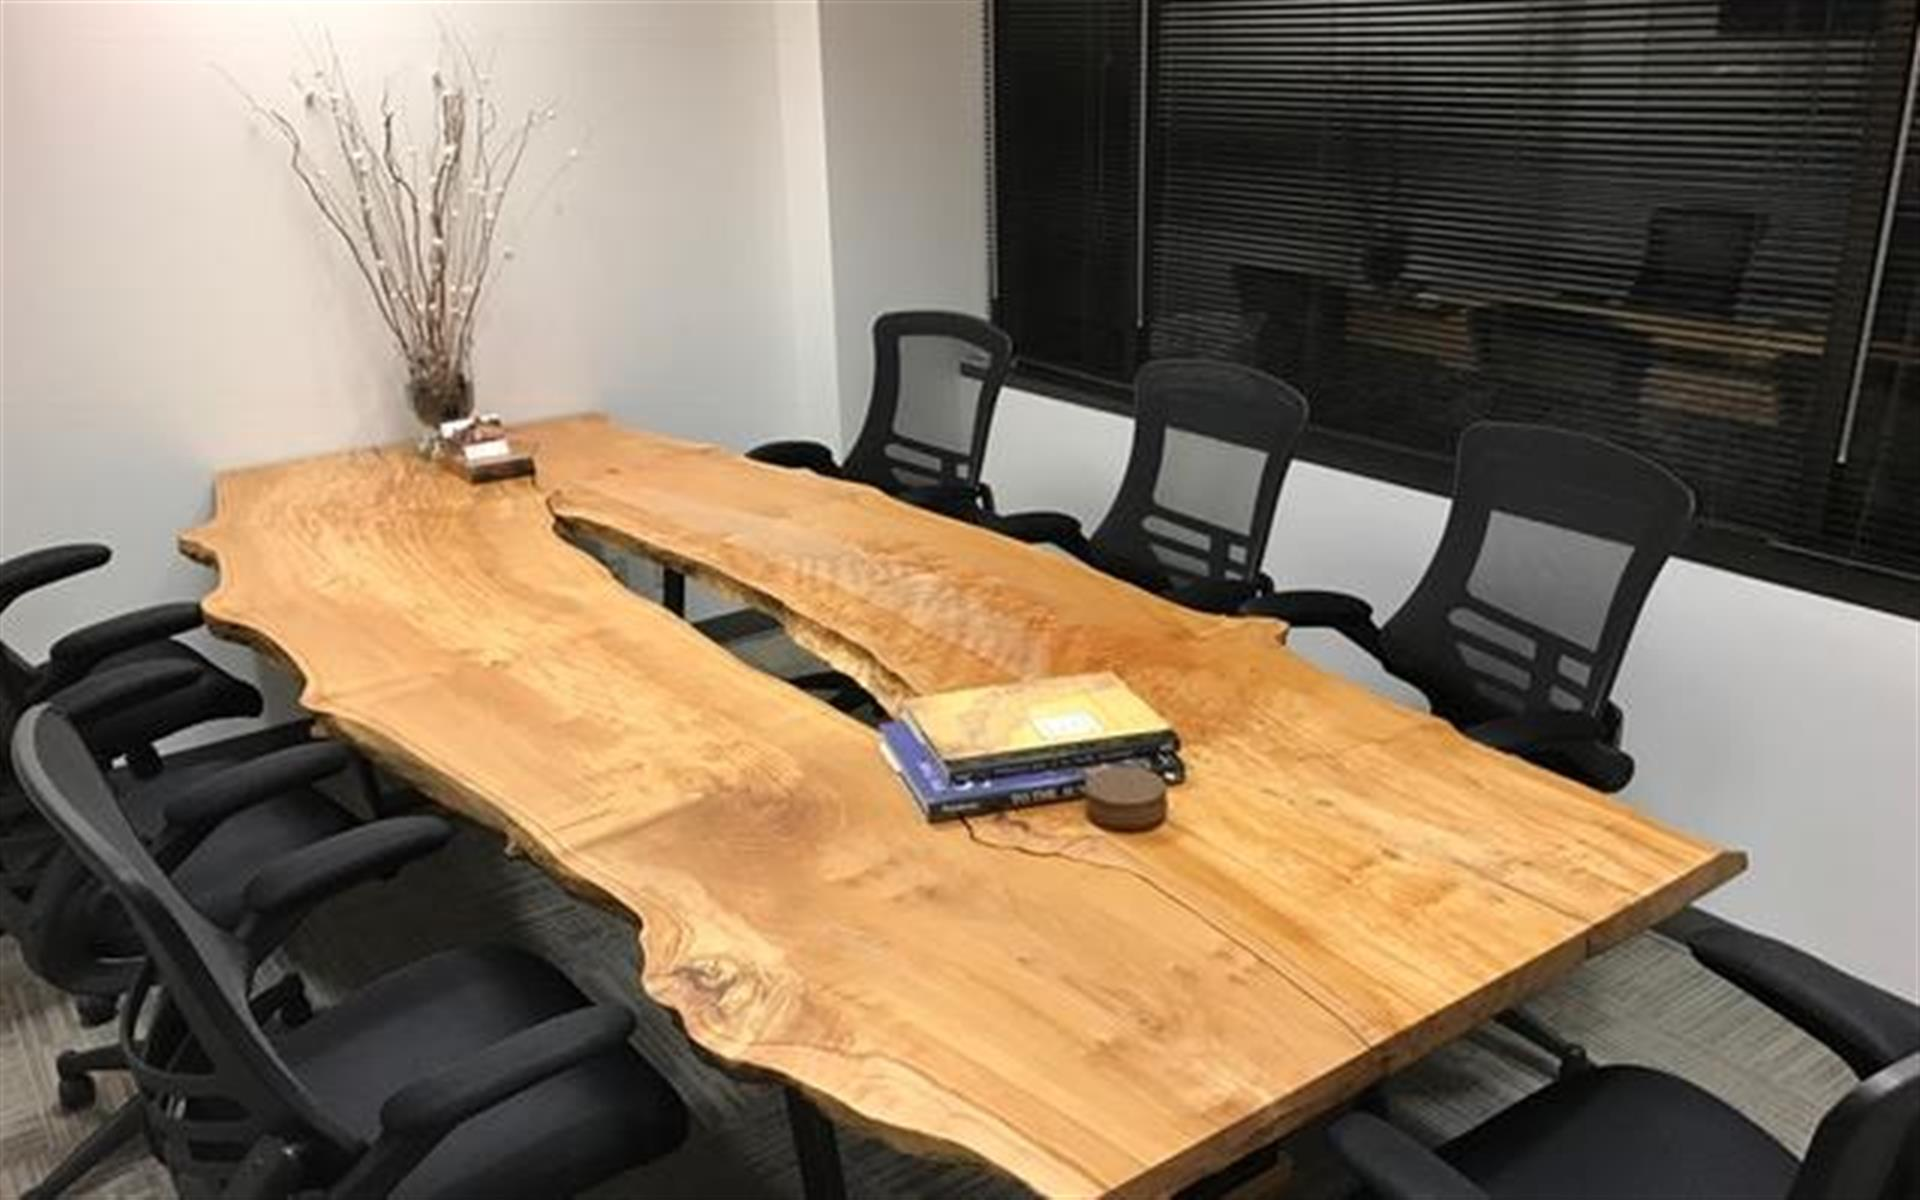 Office Space in Bellevue 405/520 Corridor - Conference Room & CoWorking Space